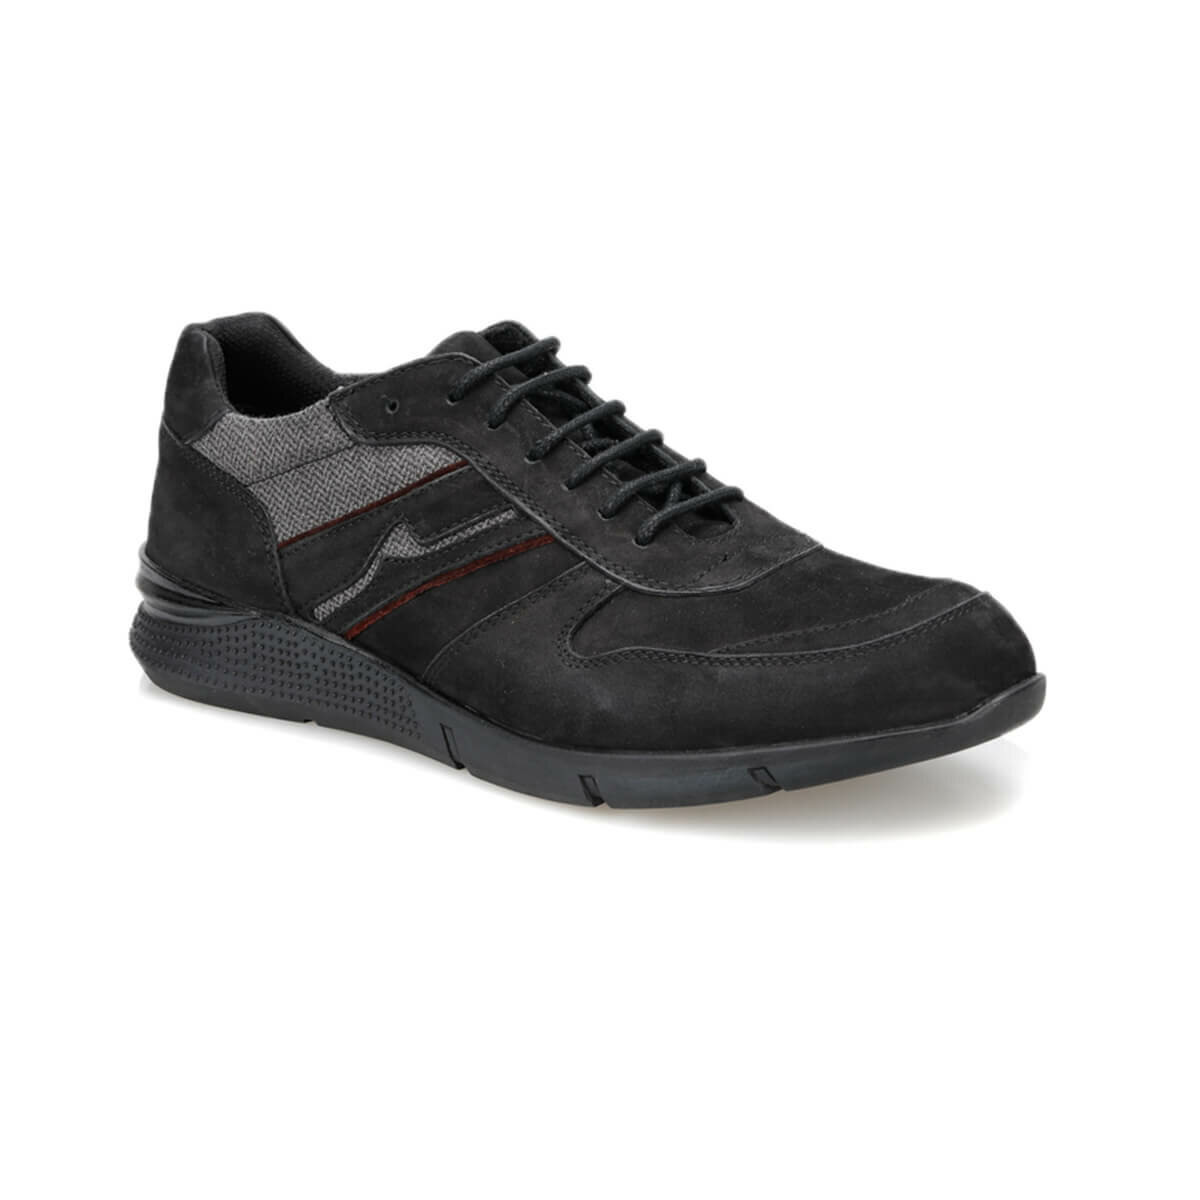 FLO 60968-A Black Male Shoes Forester